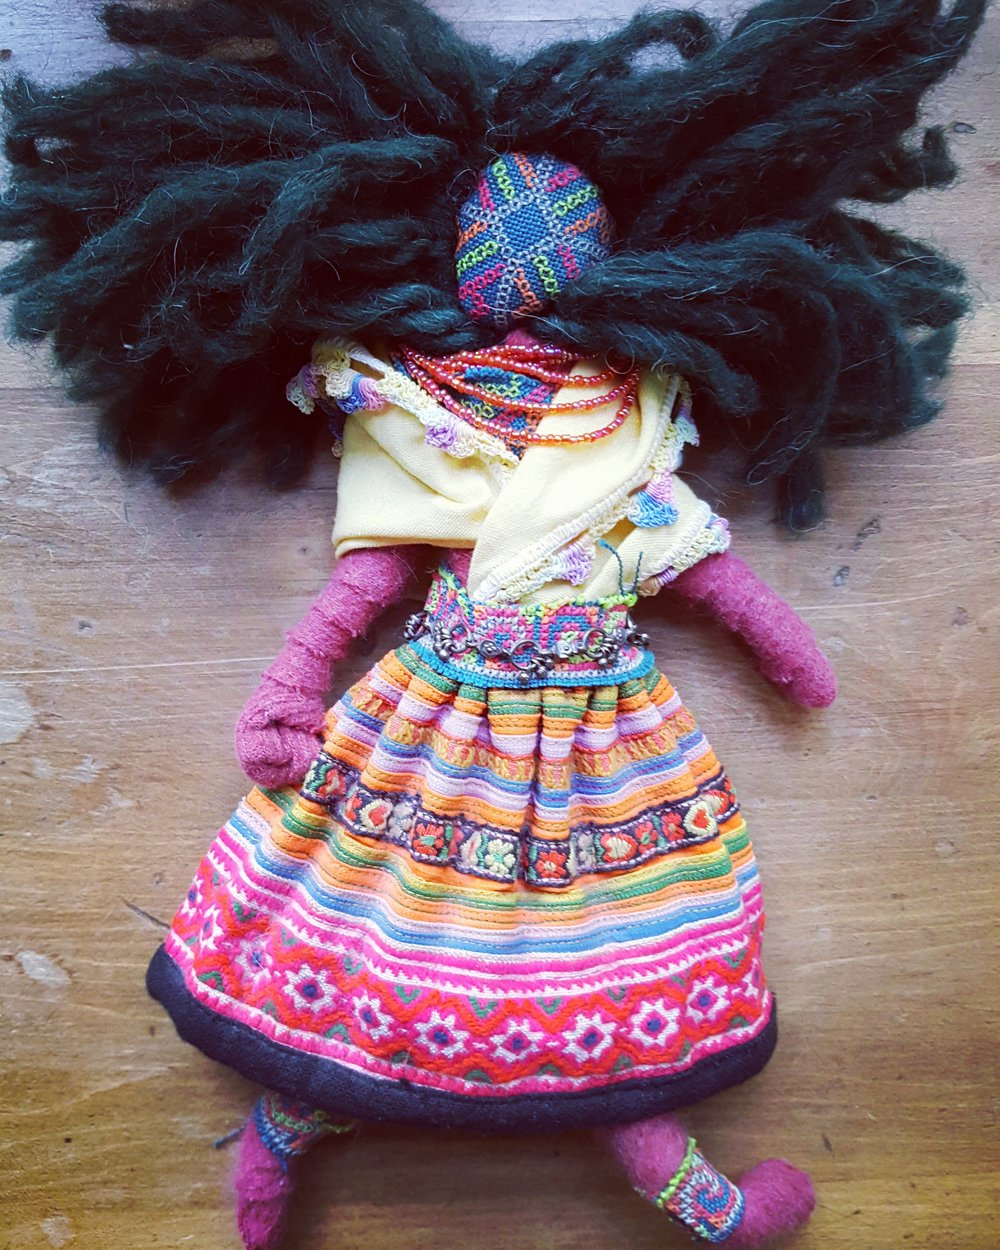 For Mumsy - This doll was inspired by fabric from Thailand. My mum took me on a trip to South East Asia for my 40th birthday and I made her this doll to thank her. I so admire her adventurous spirit. Love you mumsy. xo